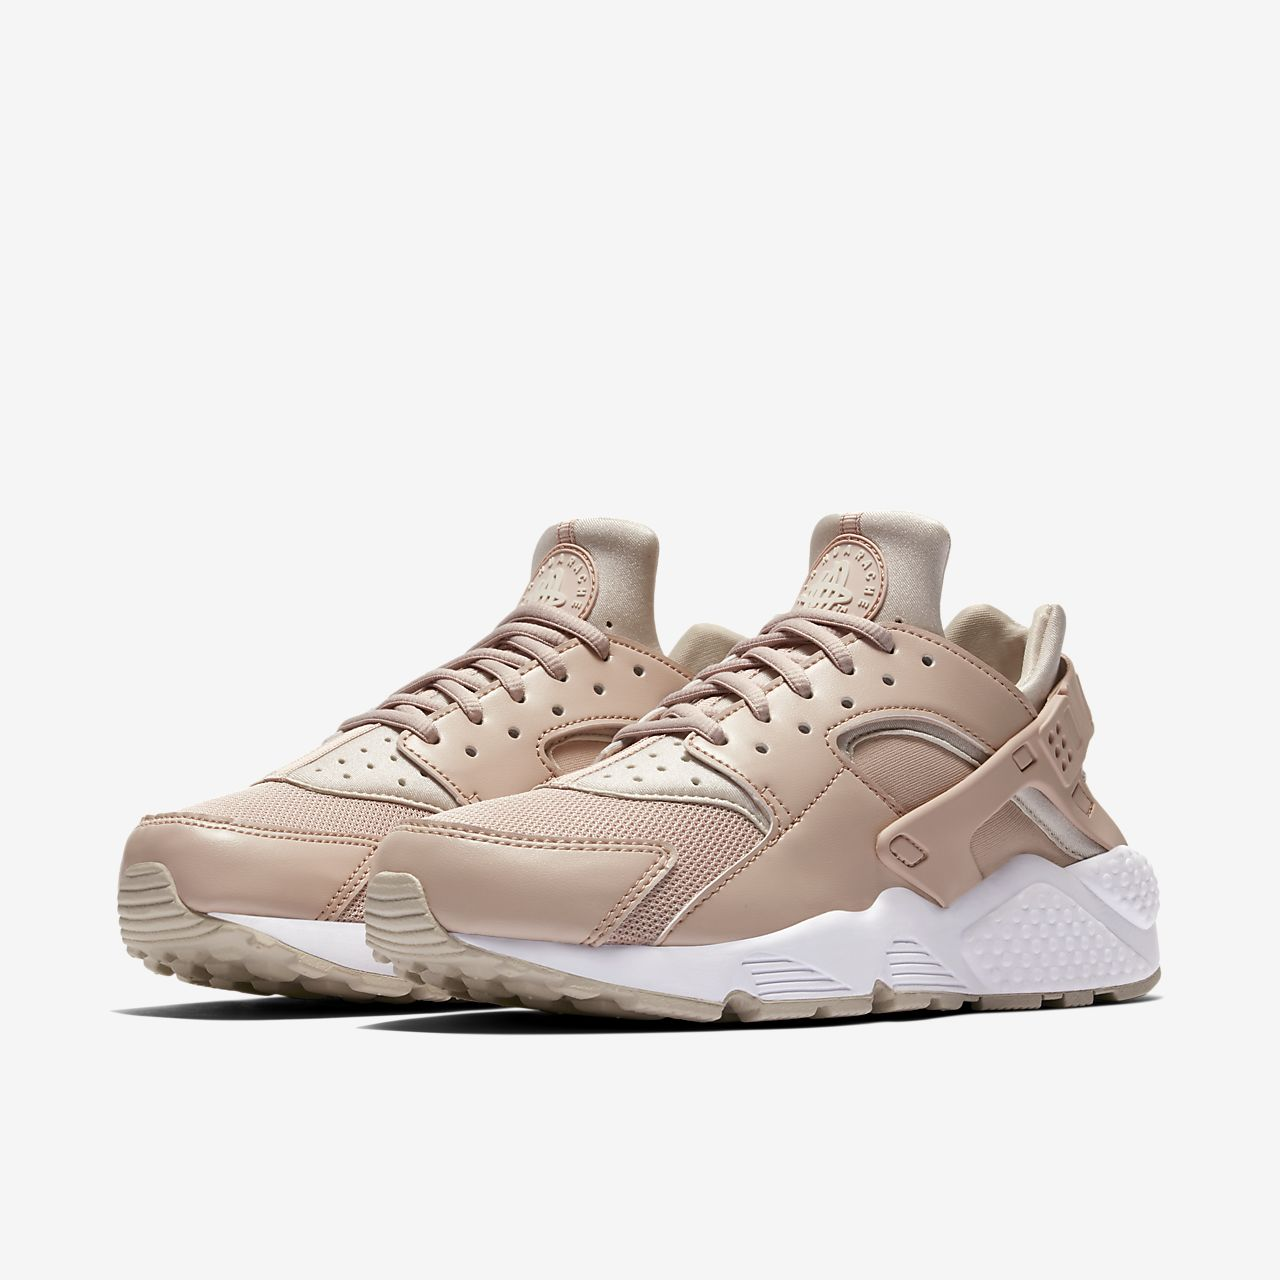 Nike Wmns Air Huarache Run Particle Beige Desert Sand Women Shoes 634835202